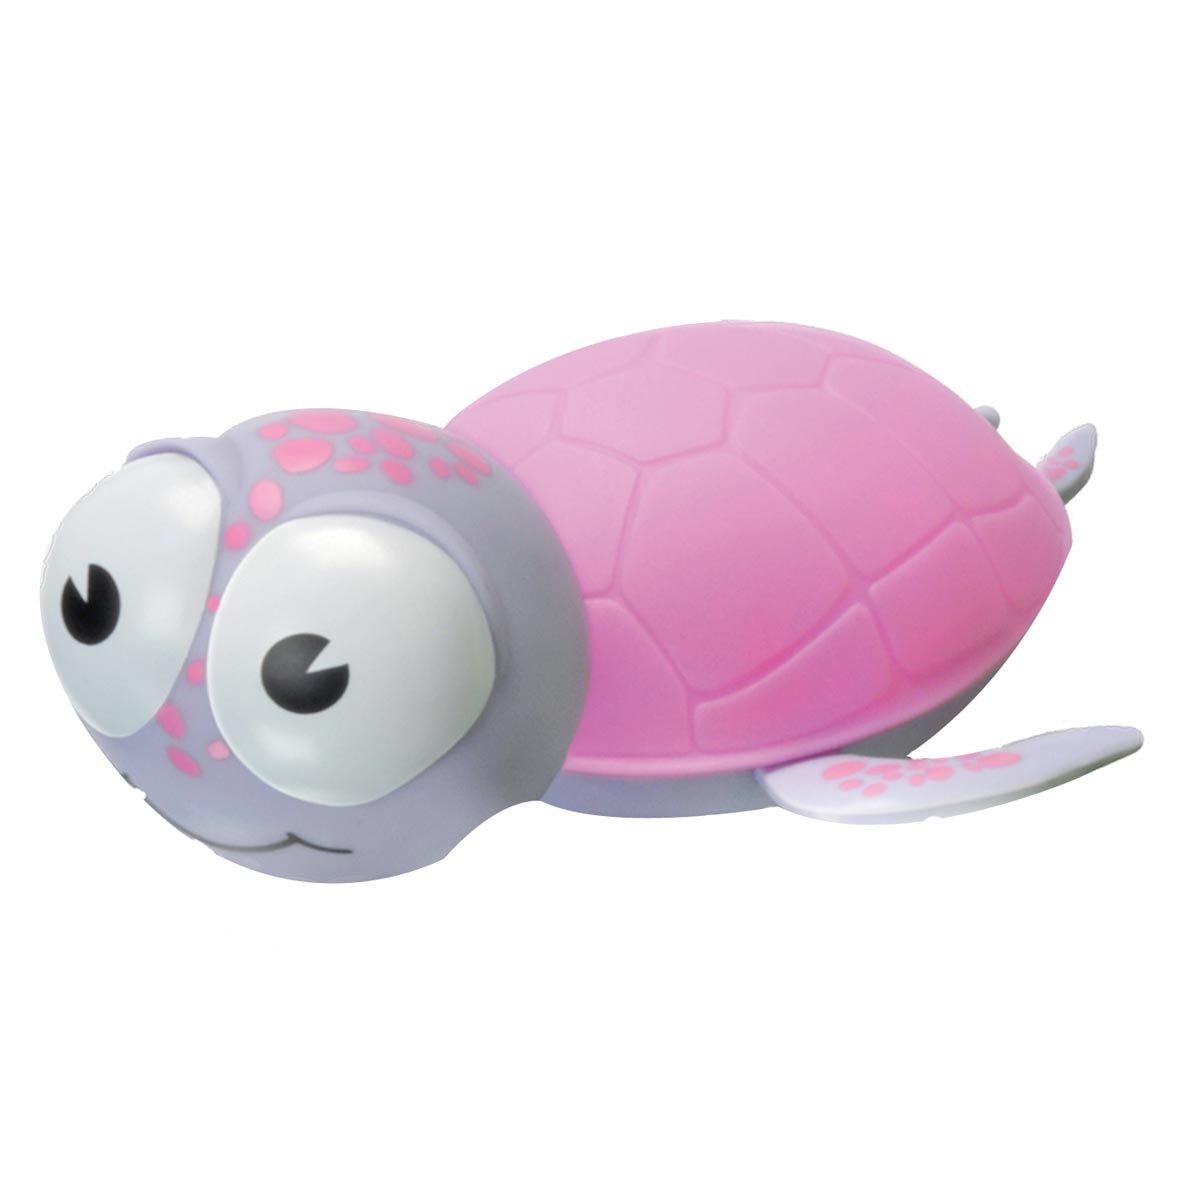 Guide d'achat veilleuse tortue